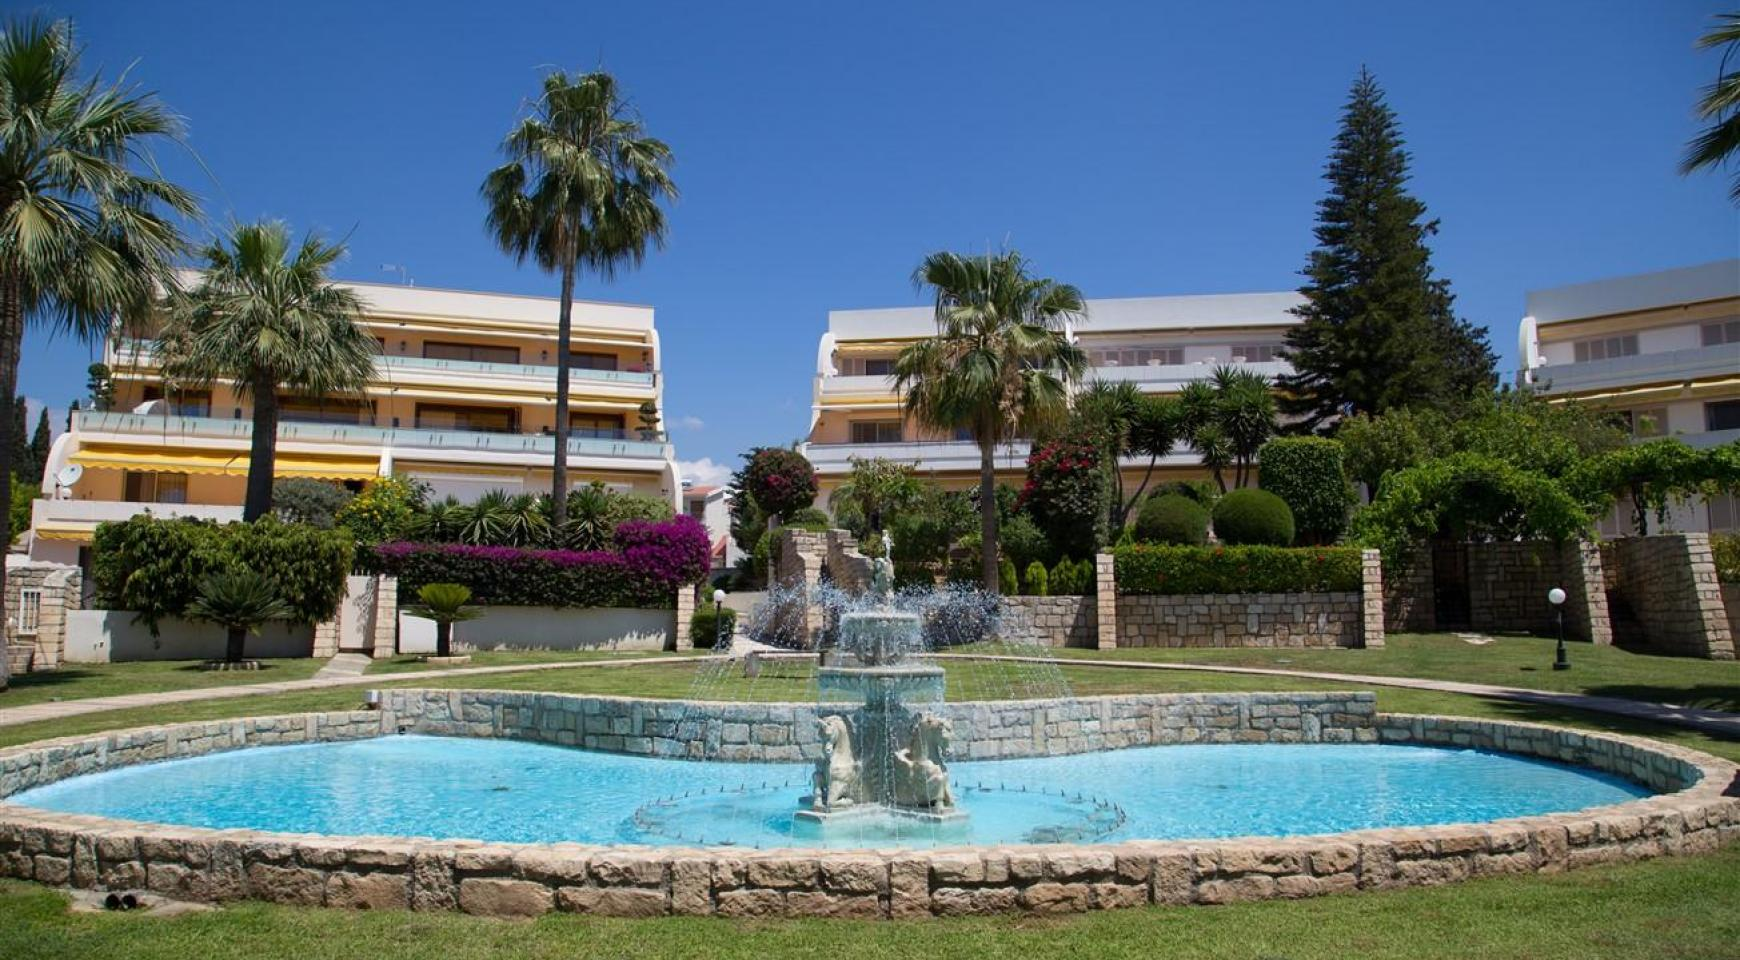 Luxury 3 Bedroom Apartment Thera 102 by the Sea - 5